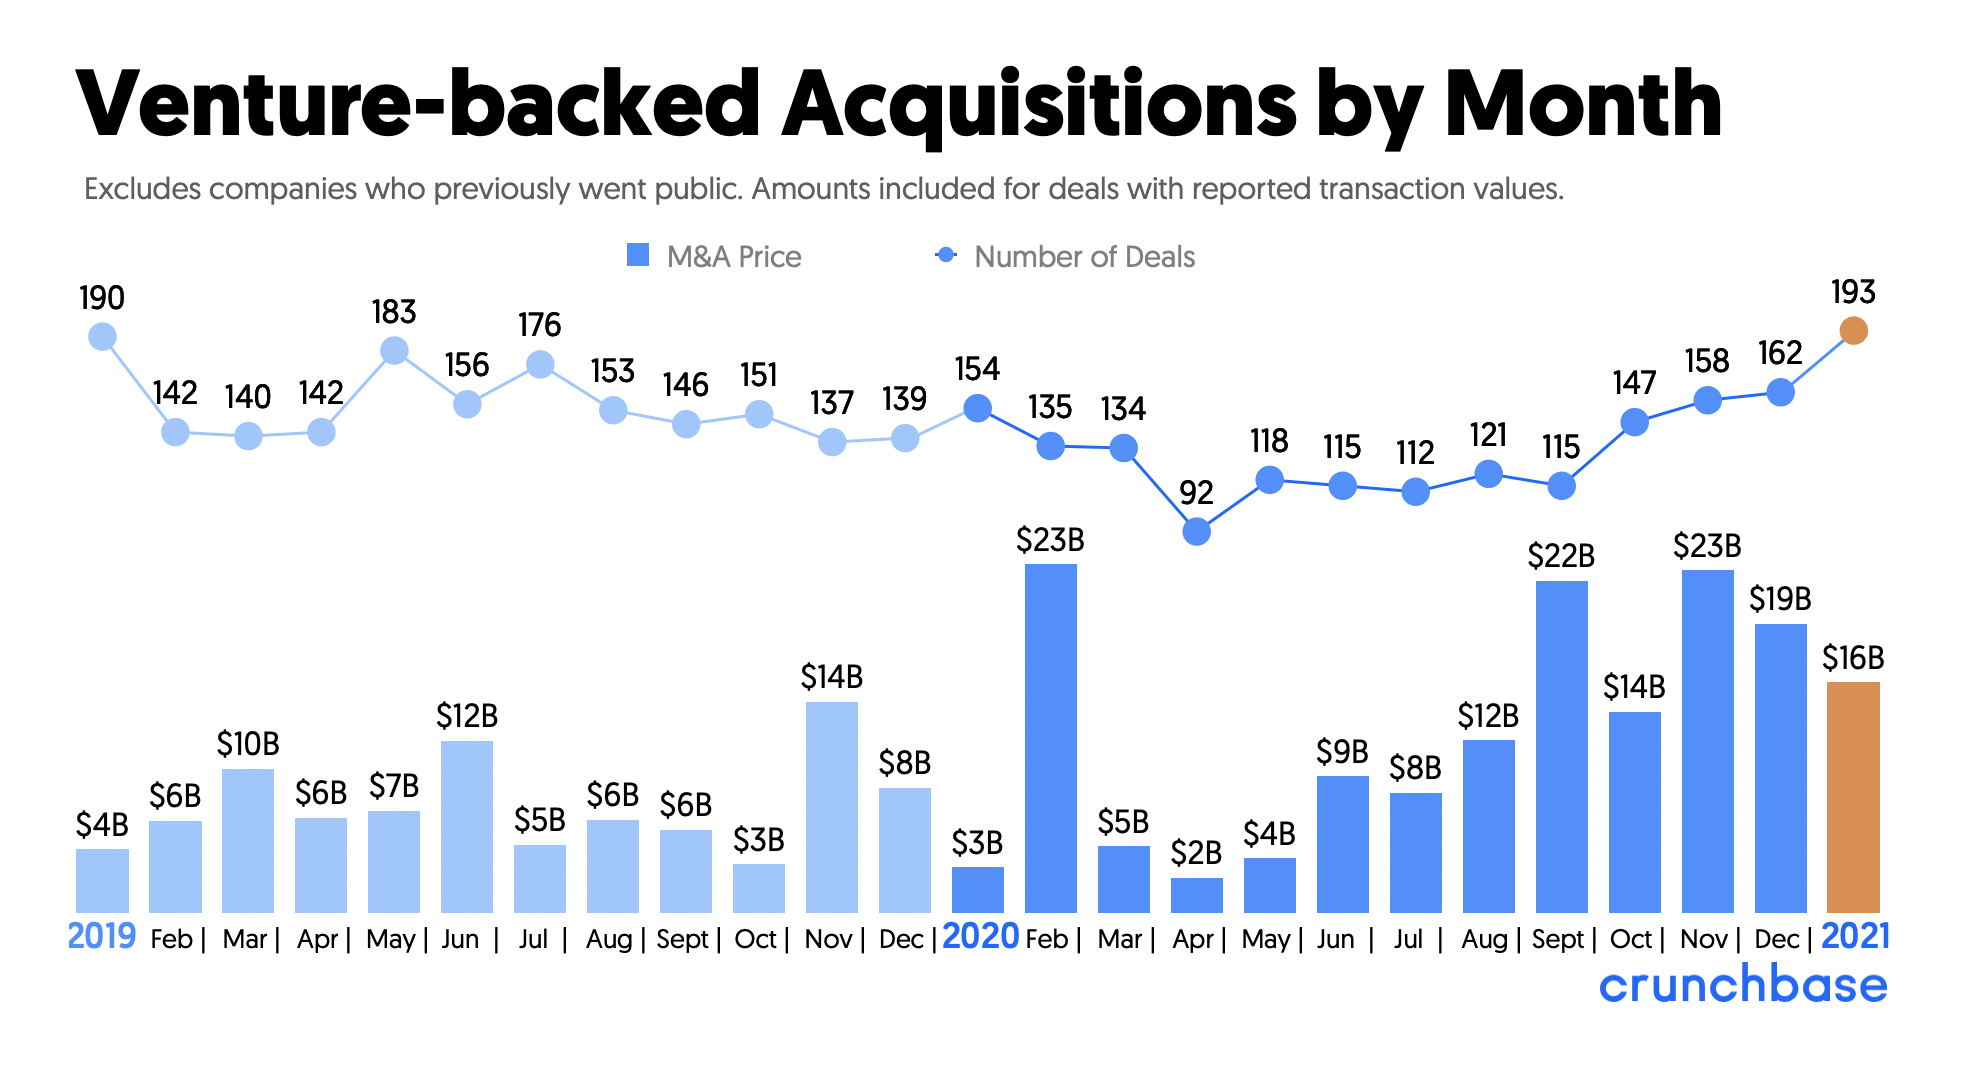 vc-backed-acquisitions-min.png